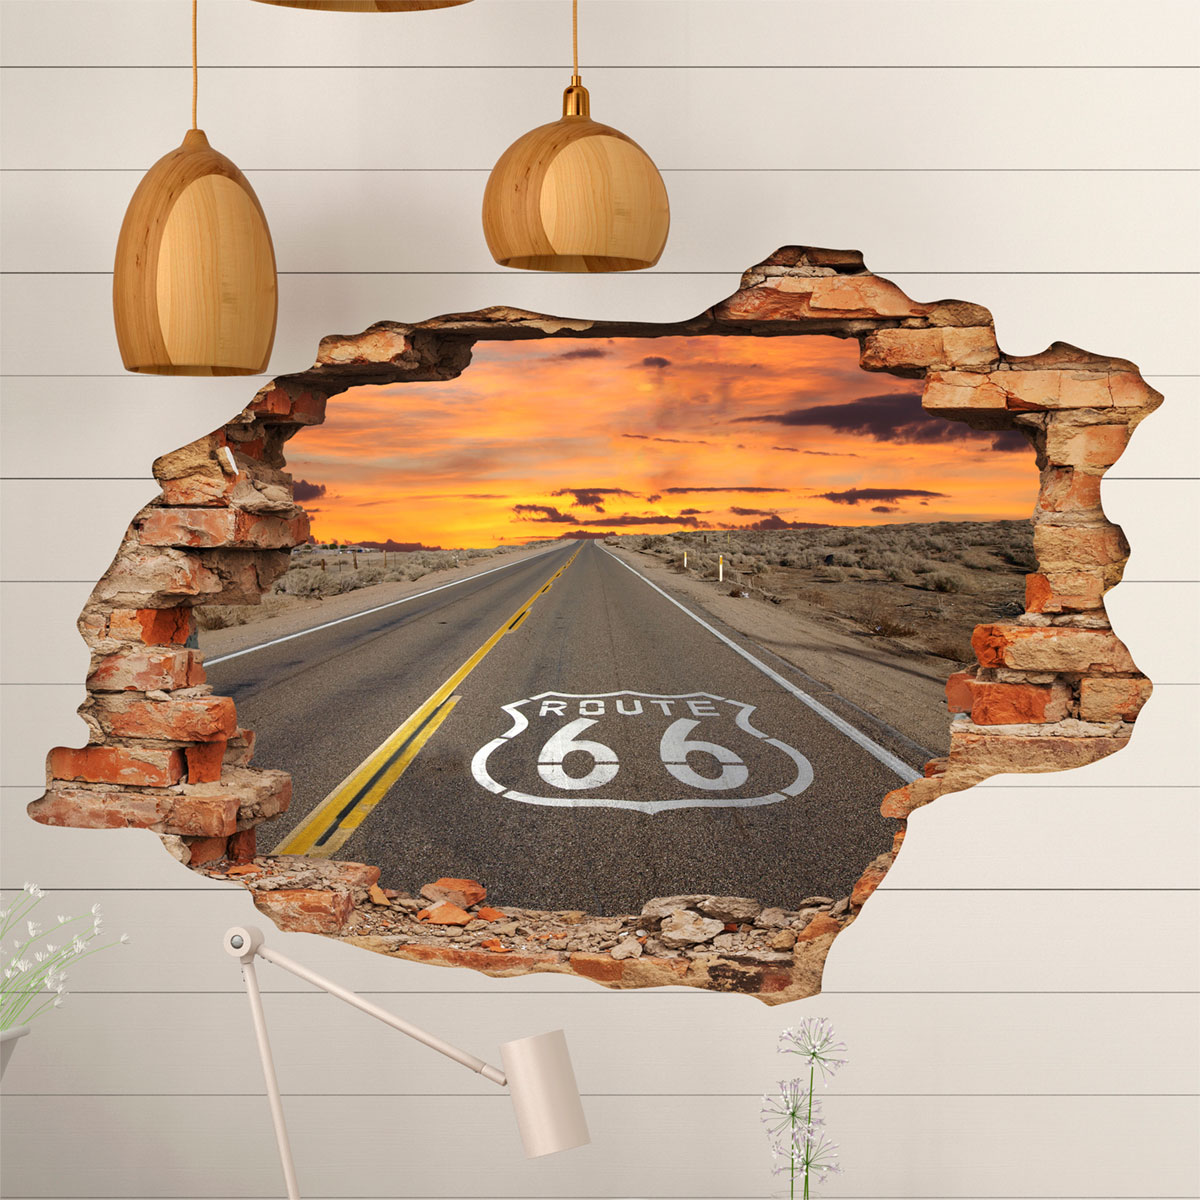 Sticker trompe l 39 oeil route 66 stickers nature arbres - Poster wanddurchbruch ...